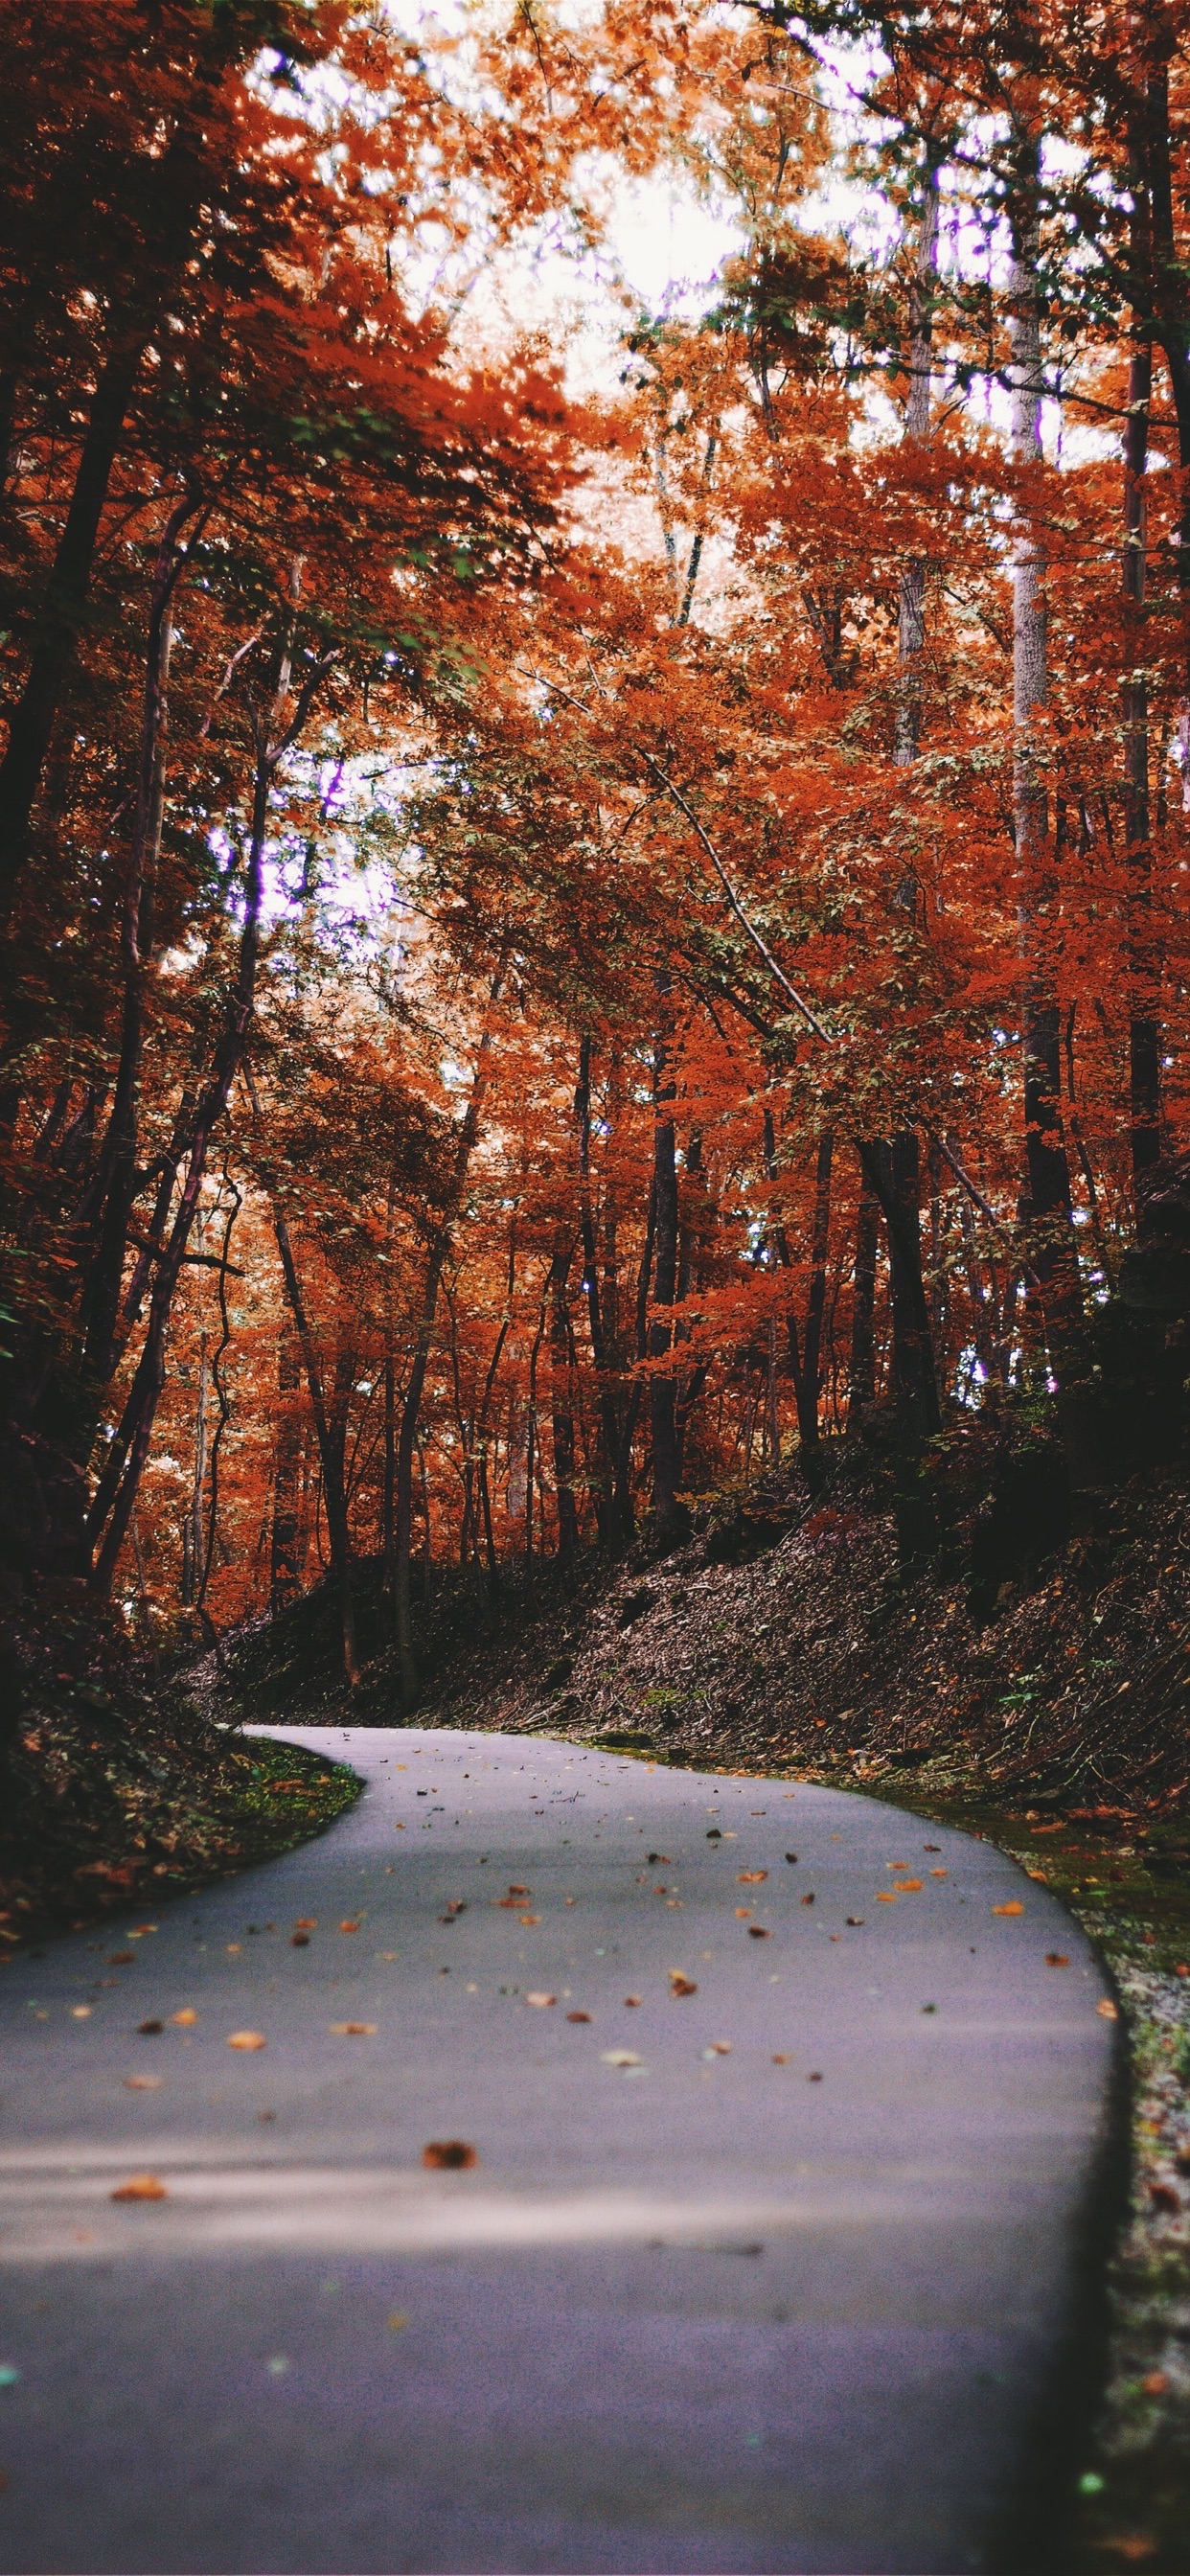 Wallpaper Weekends Autumn Iphone Xs Max Wallpapers